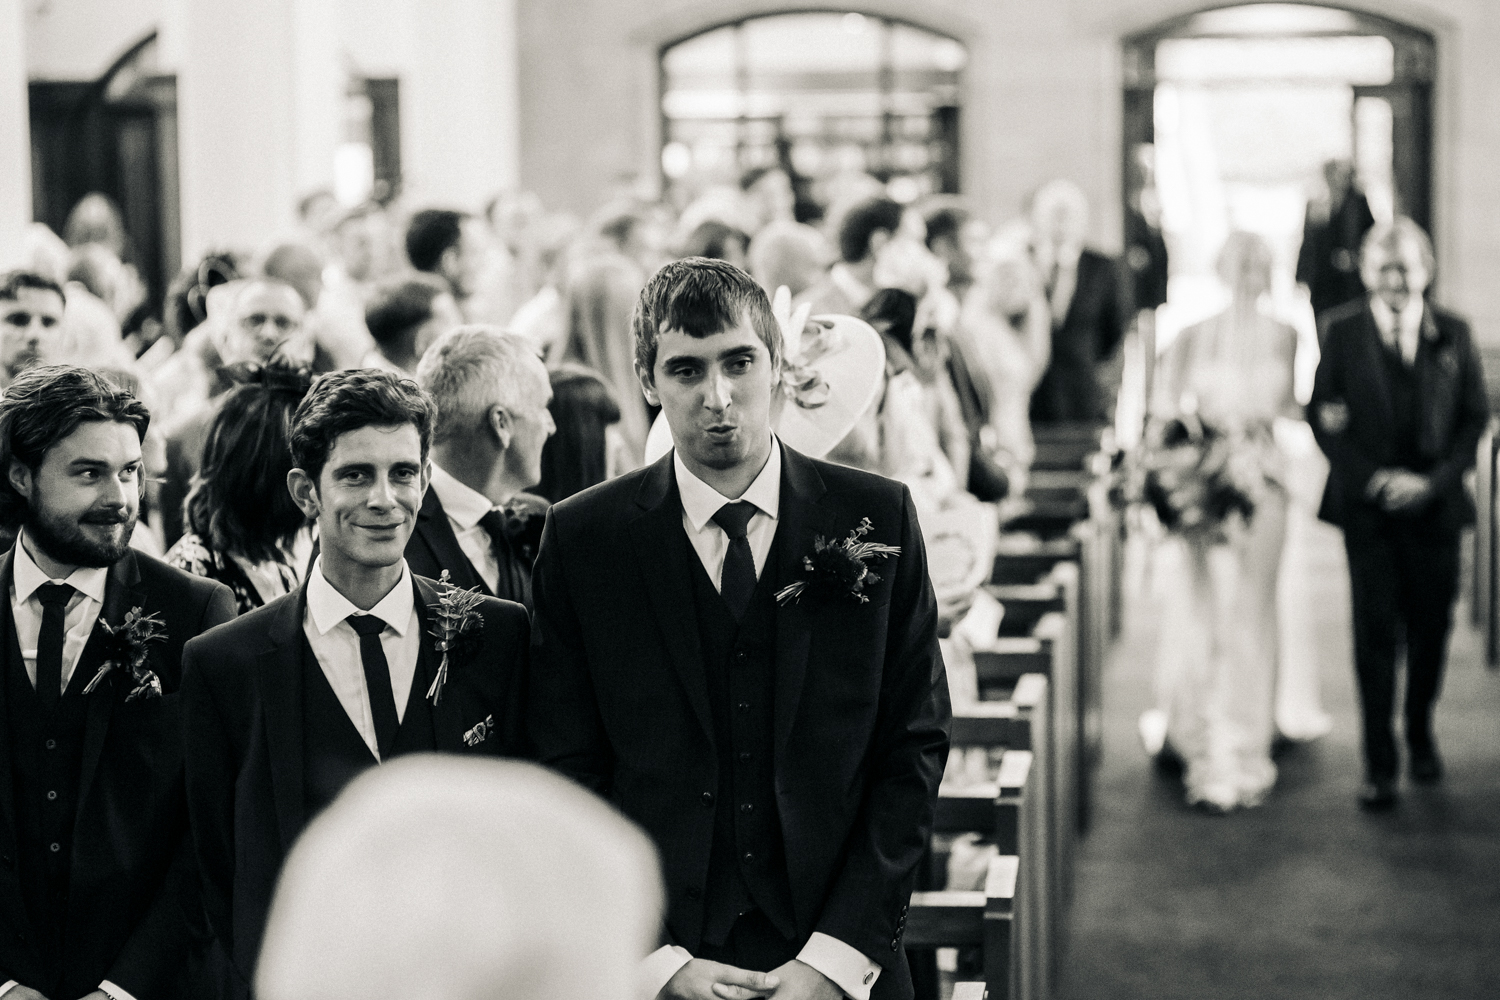 a groom looks overwhelmed as his future wife walks down the aisle. ormesby hall wedding middlesbrough. stop motion wedding films videos uk